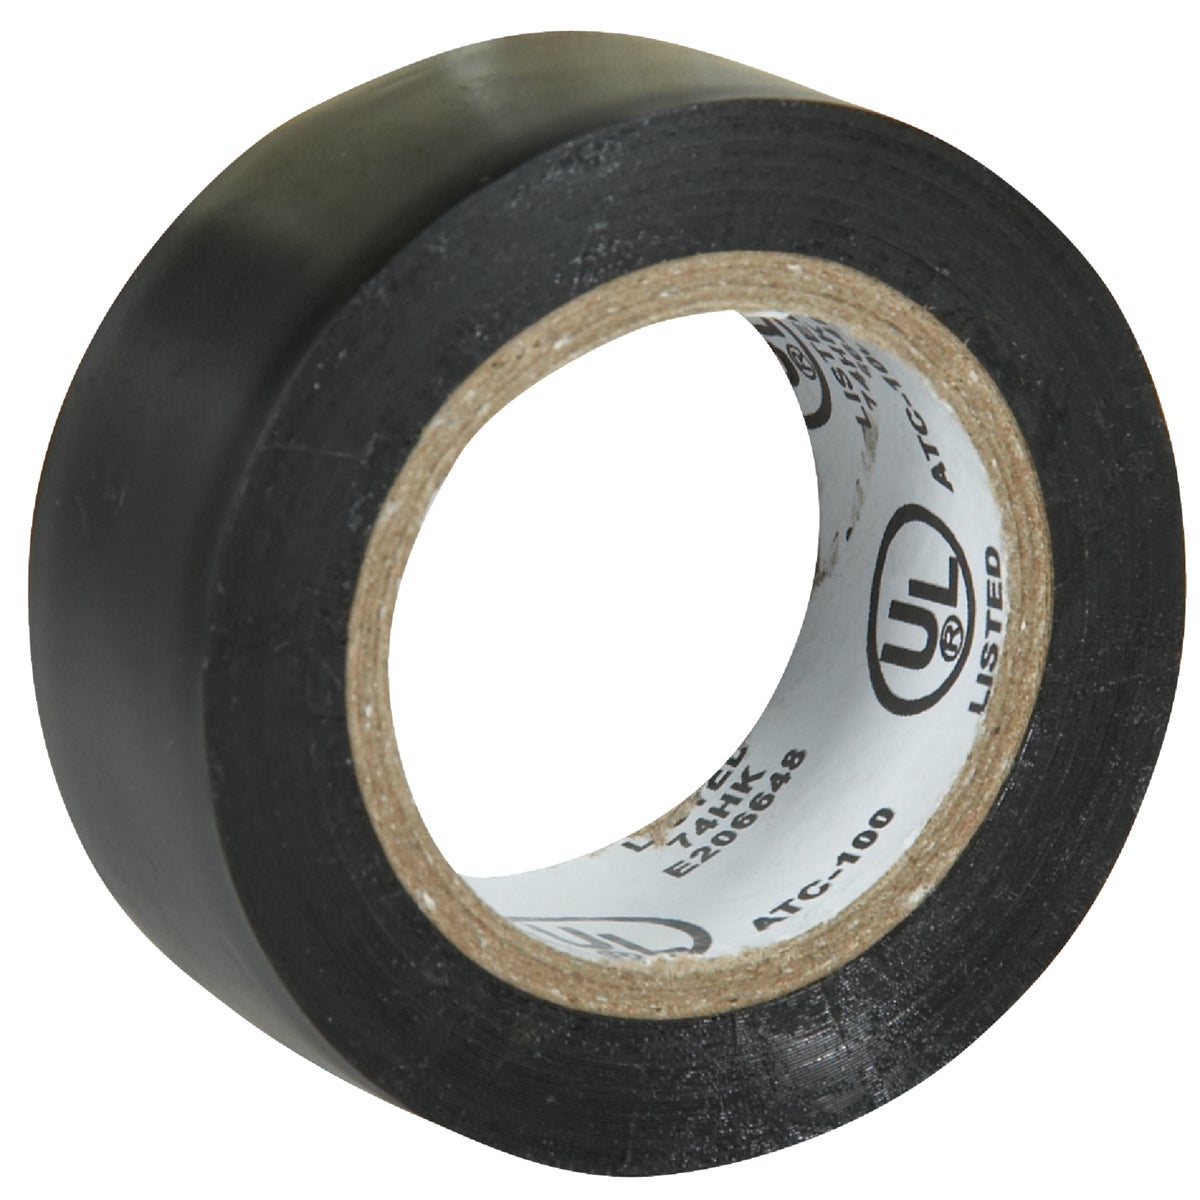 "3/4""X20' ELECTRICAL TAPE"